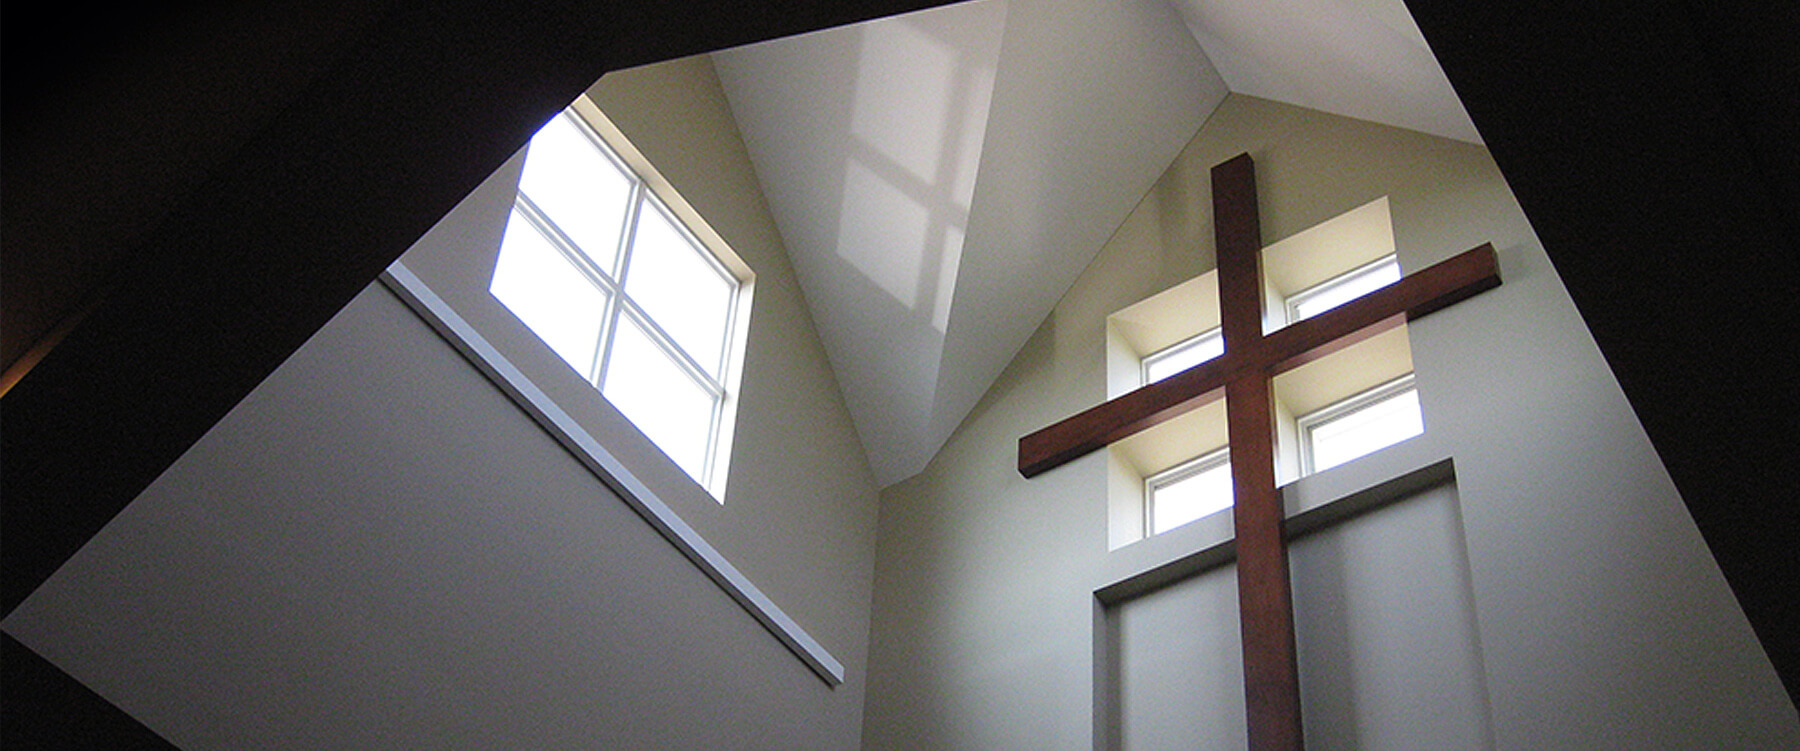 Good Shepherd Lutheran Church Interior Cross